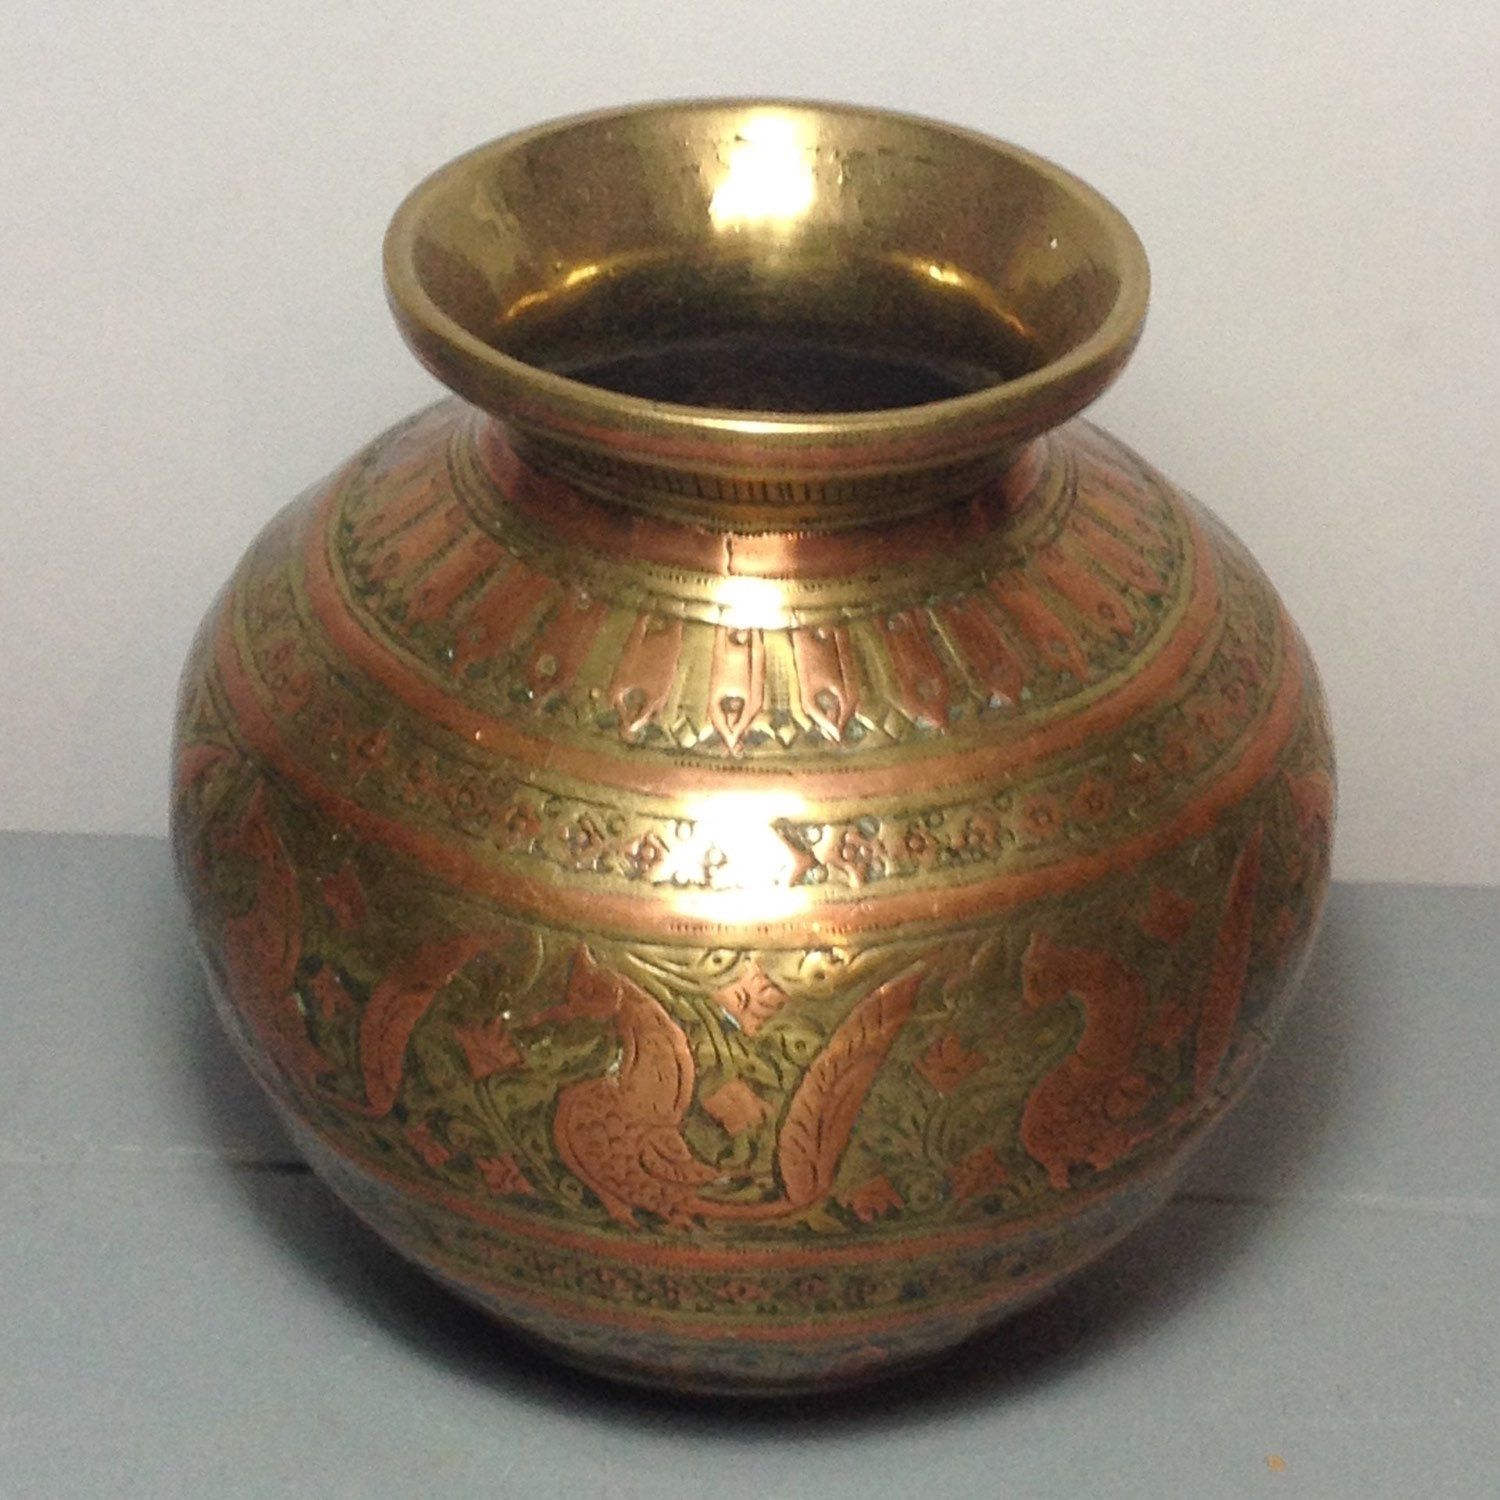 Coming soon to suki and polly an antique 18th century indian lota coming soon to suki and polly an antique 18th century indian lota vase made from reviewsmspy